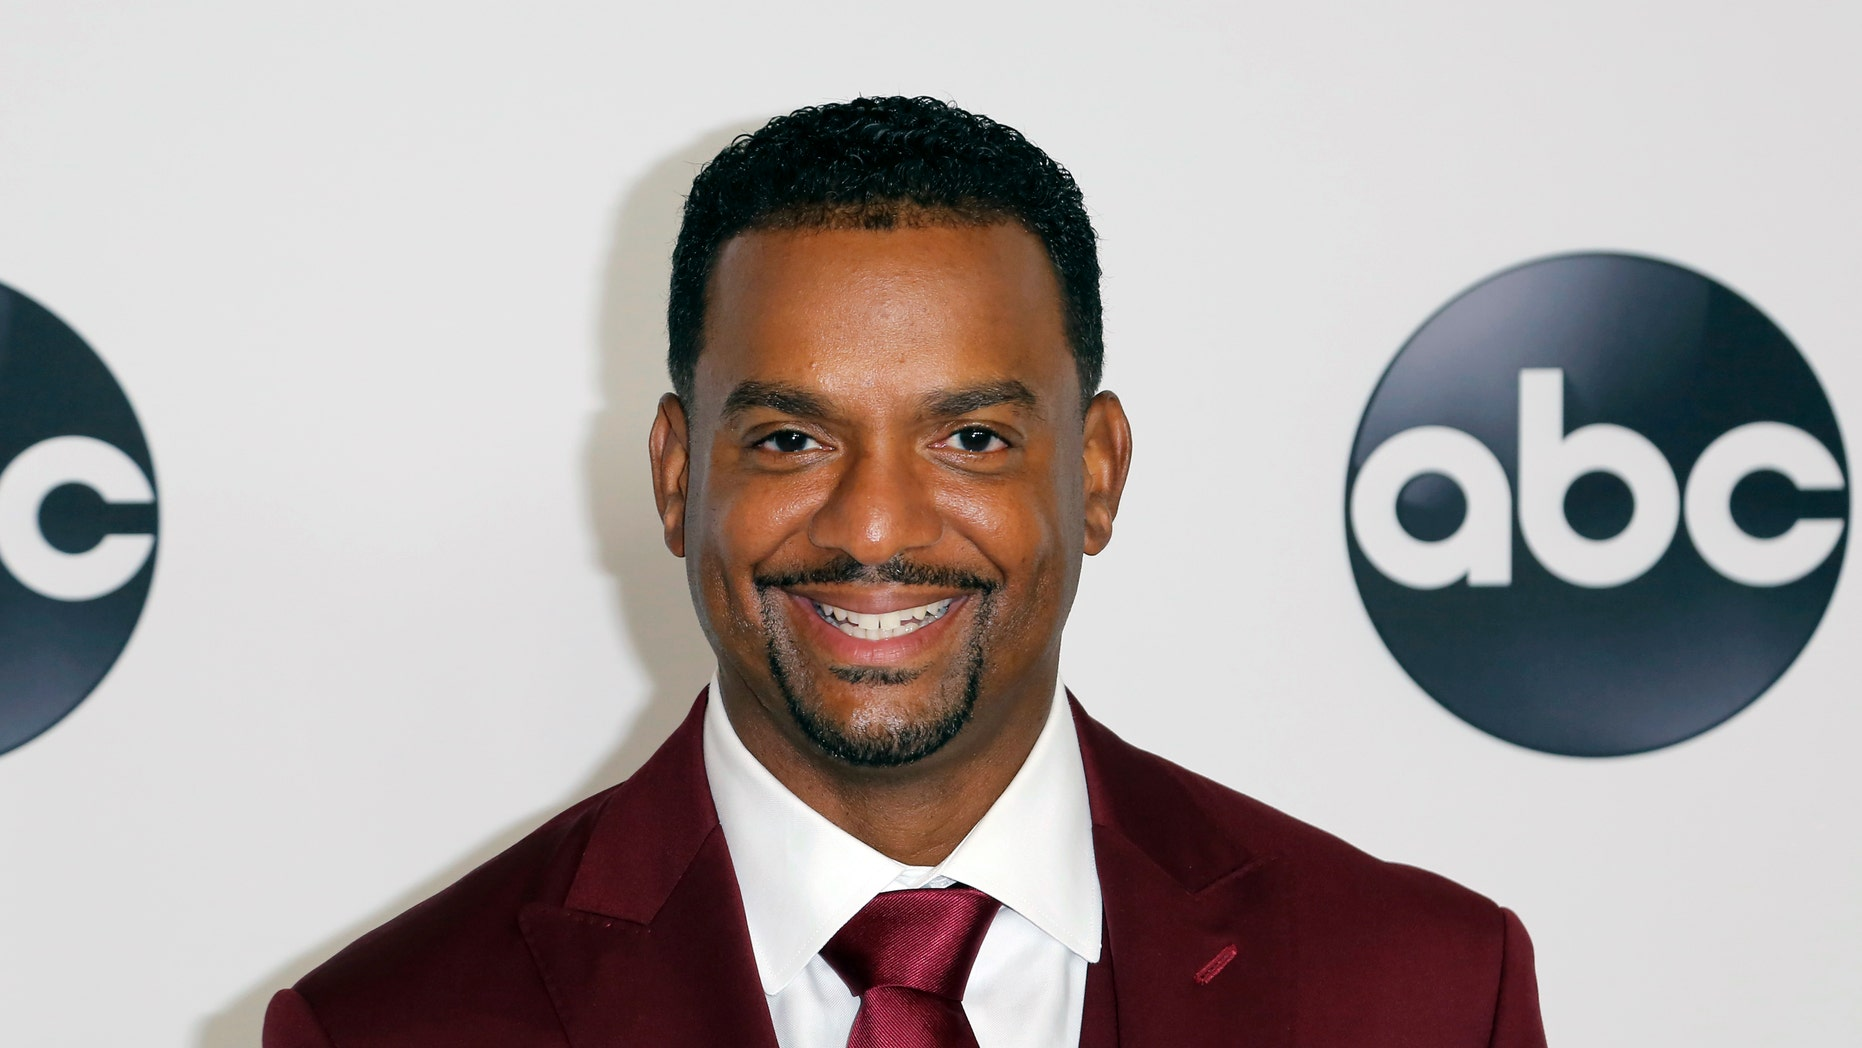 """FILE - In this Aug. 7, 2018 file photo, Alfonso Ribeiro arrives at the Disney/ABC 2018 Television Critics Association Summer Press Tour in Beverly Hills, Calif. Ribeiro is suing creators of Fortnite and NBA 2K for using his famous dance as Carlton from """"The Fresh Prince of Bel-Air"""" on the popular video games."""